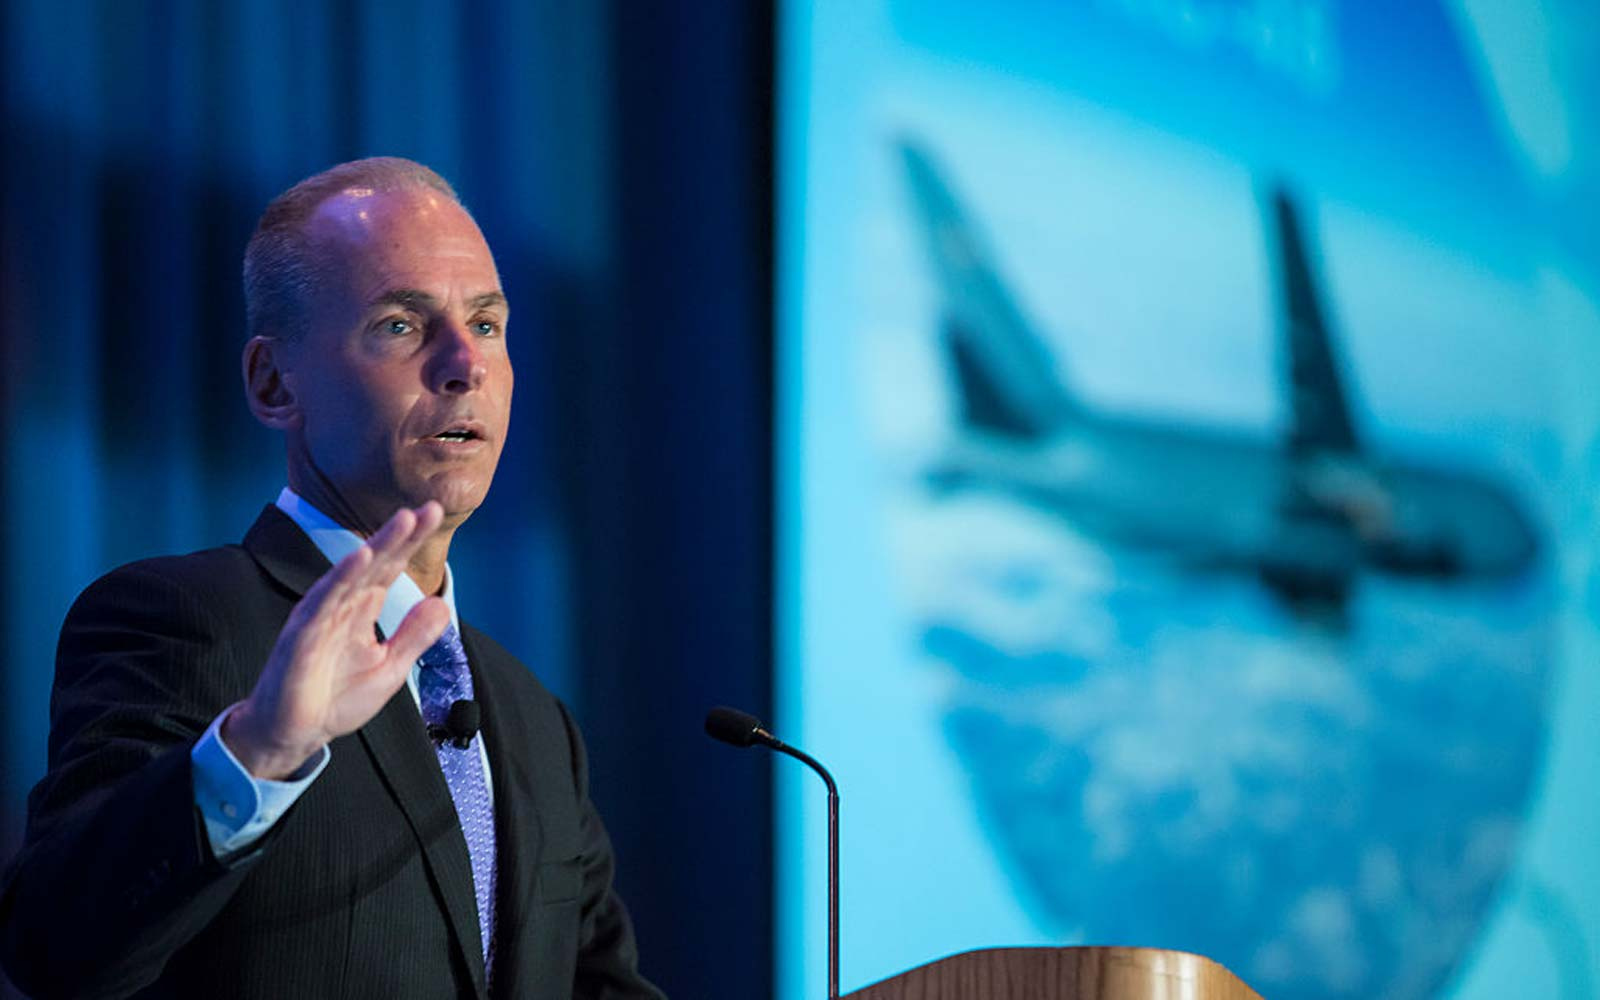 Boeing's CEO Wrote an Open Letter About the 737 Max Plane After Two Deadly Crashes